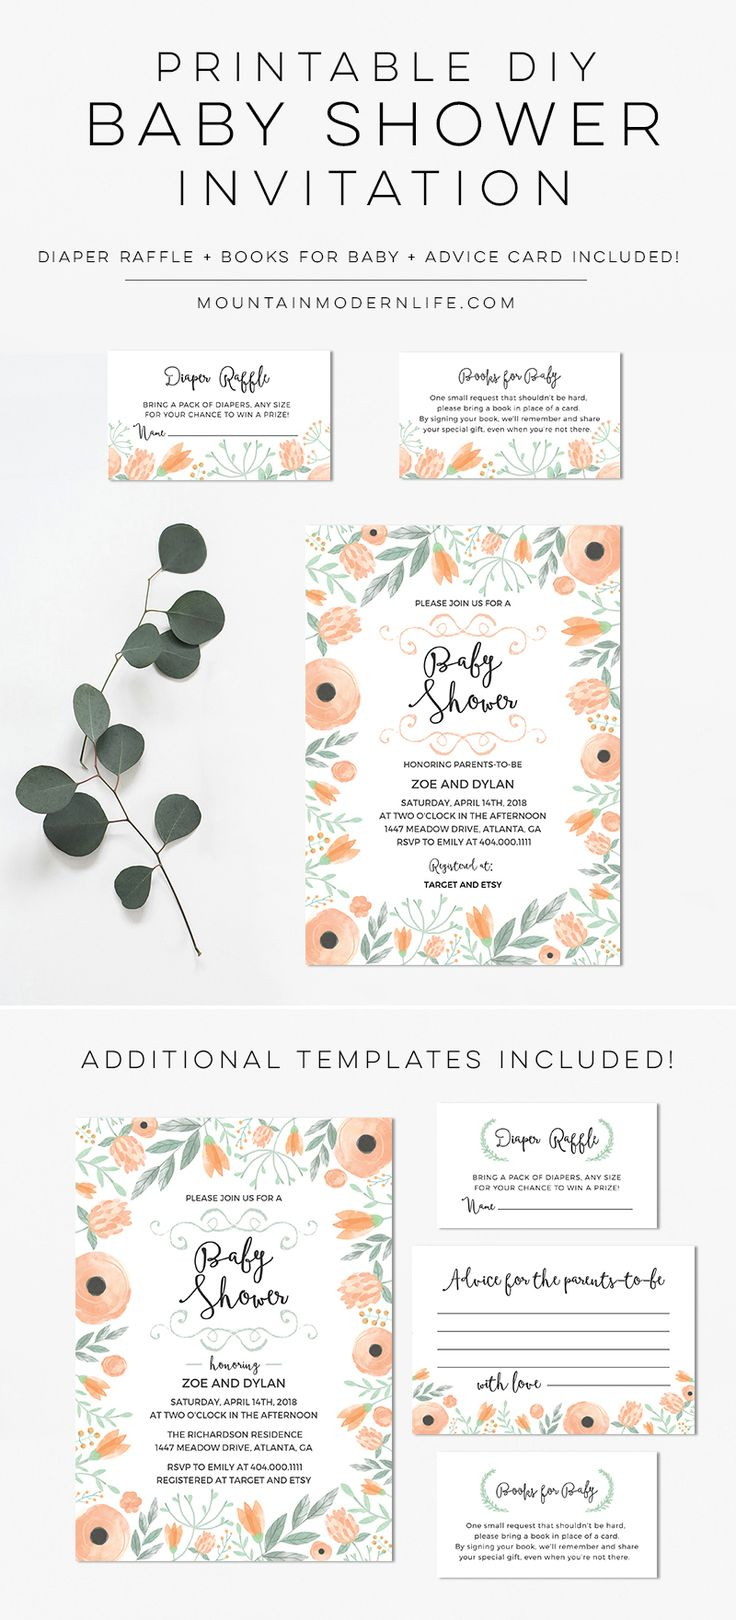 57 Best Diy Wedding Invitations Images On Pinterest Rustic